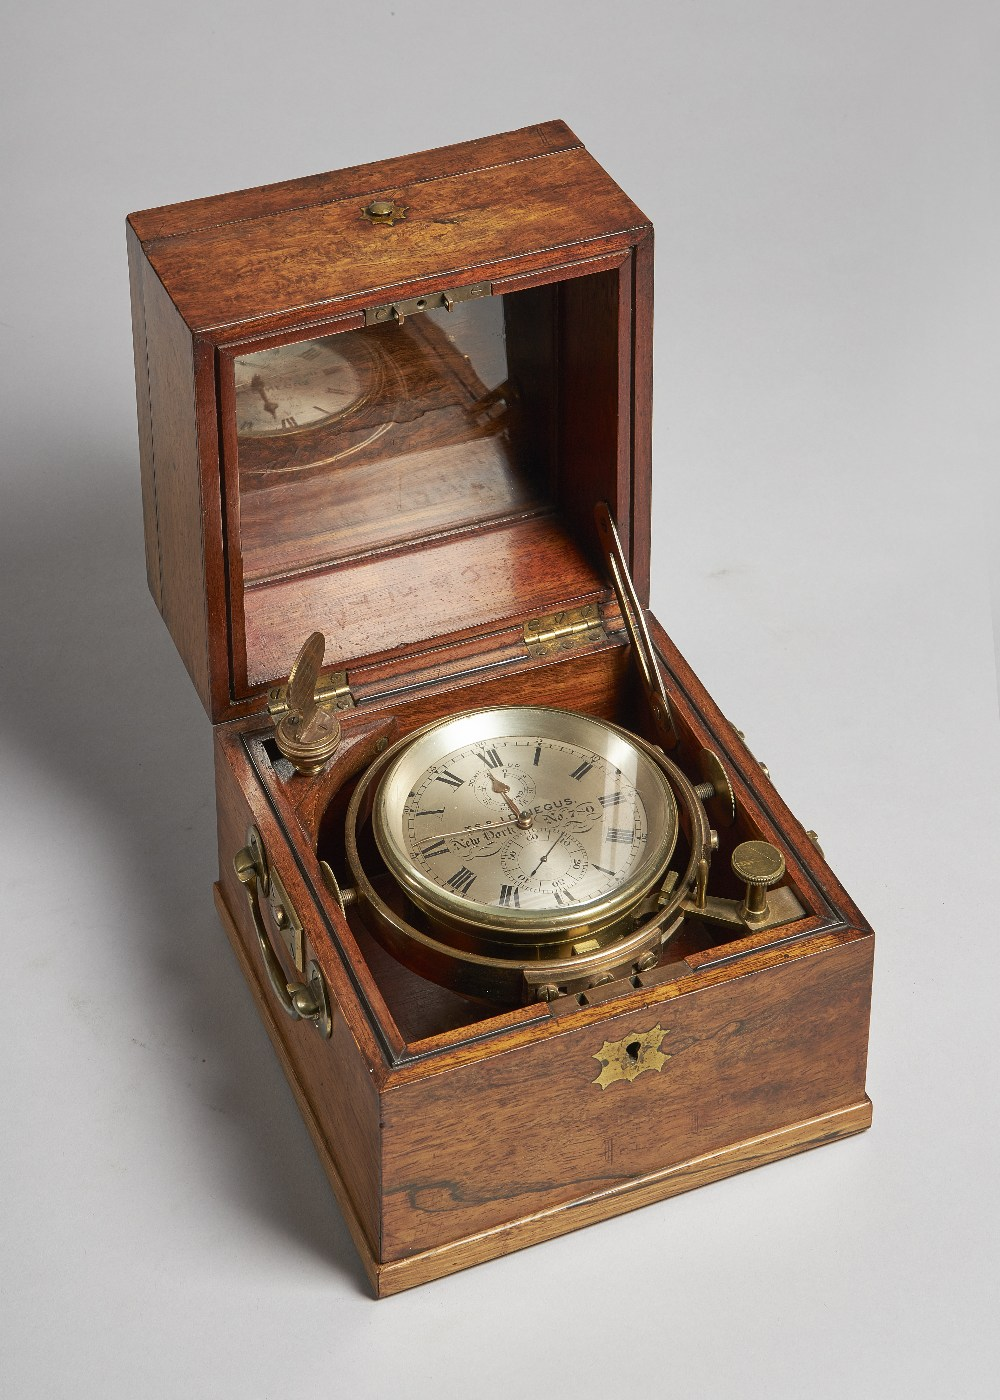 Lot 683 - An interesting American walnut cased two-day marine chronometer By T. S. & J. D.